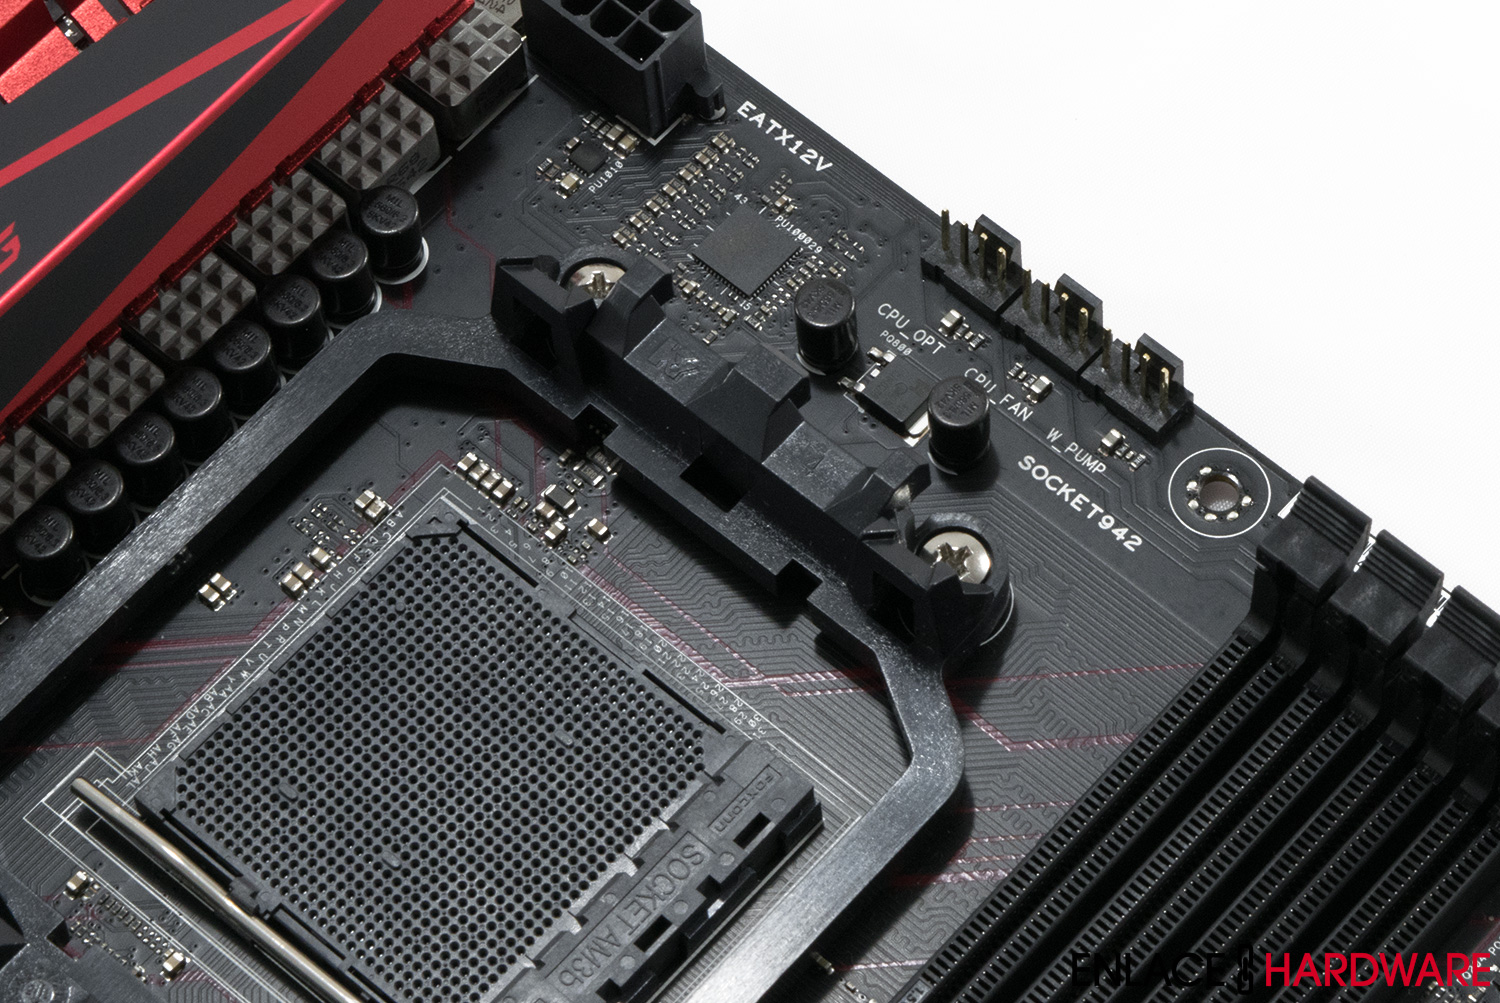 ASUS 970 Pro Gaming Aura Review 7